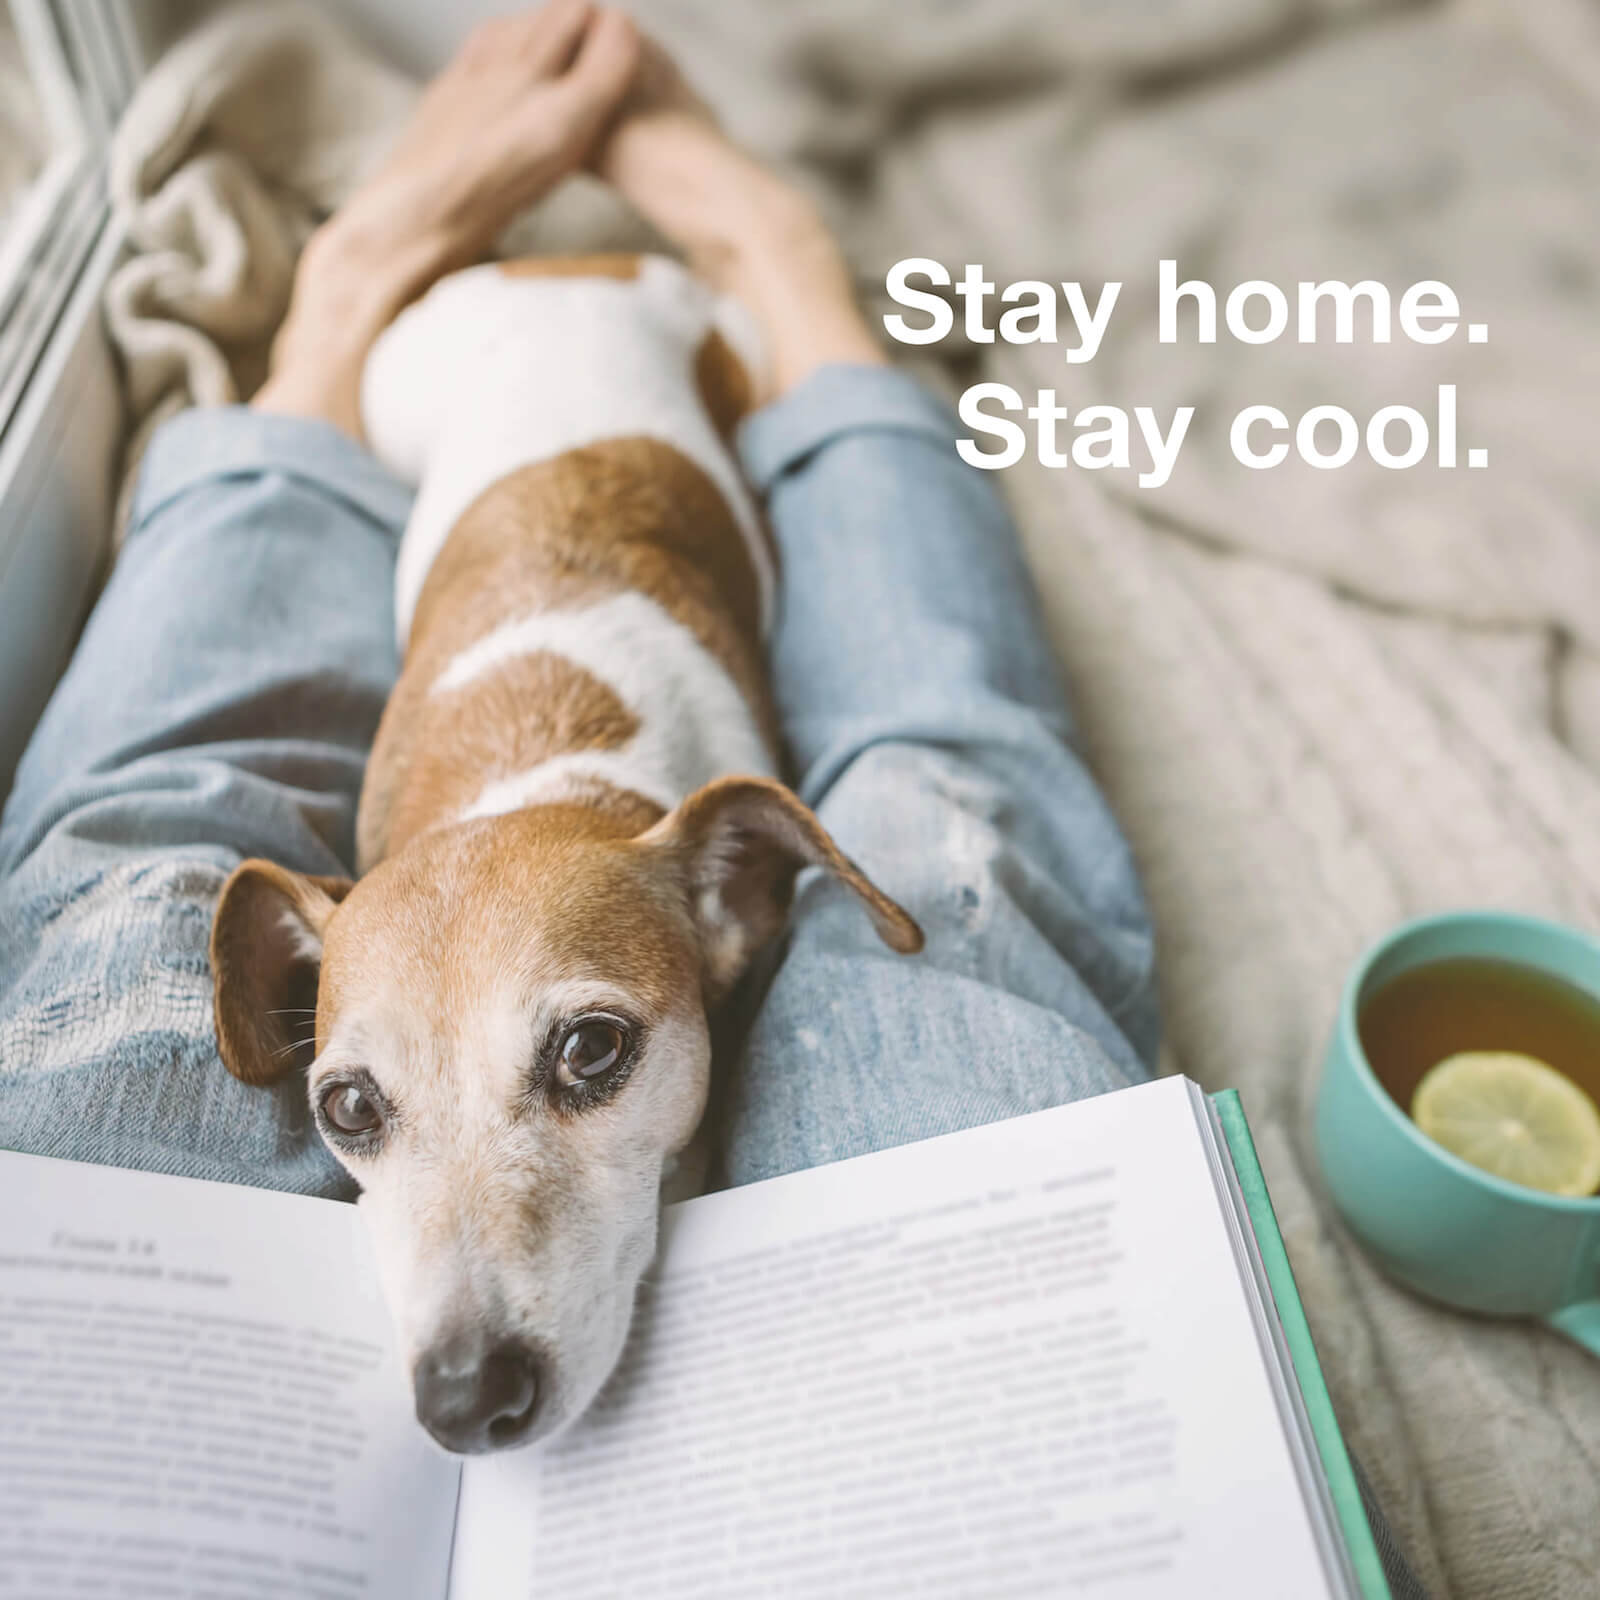 Stay home. Stay cool. #wirbleibenzuhause